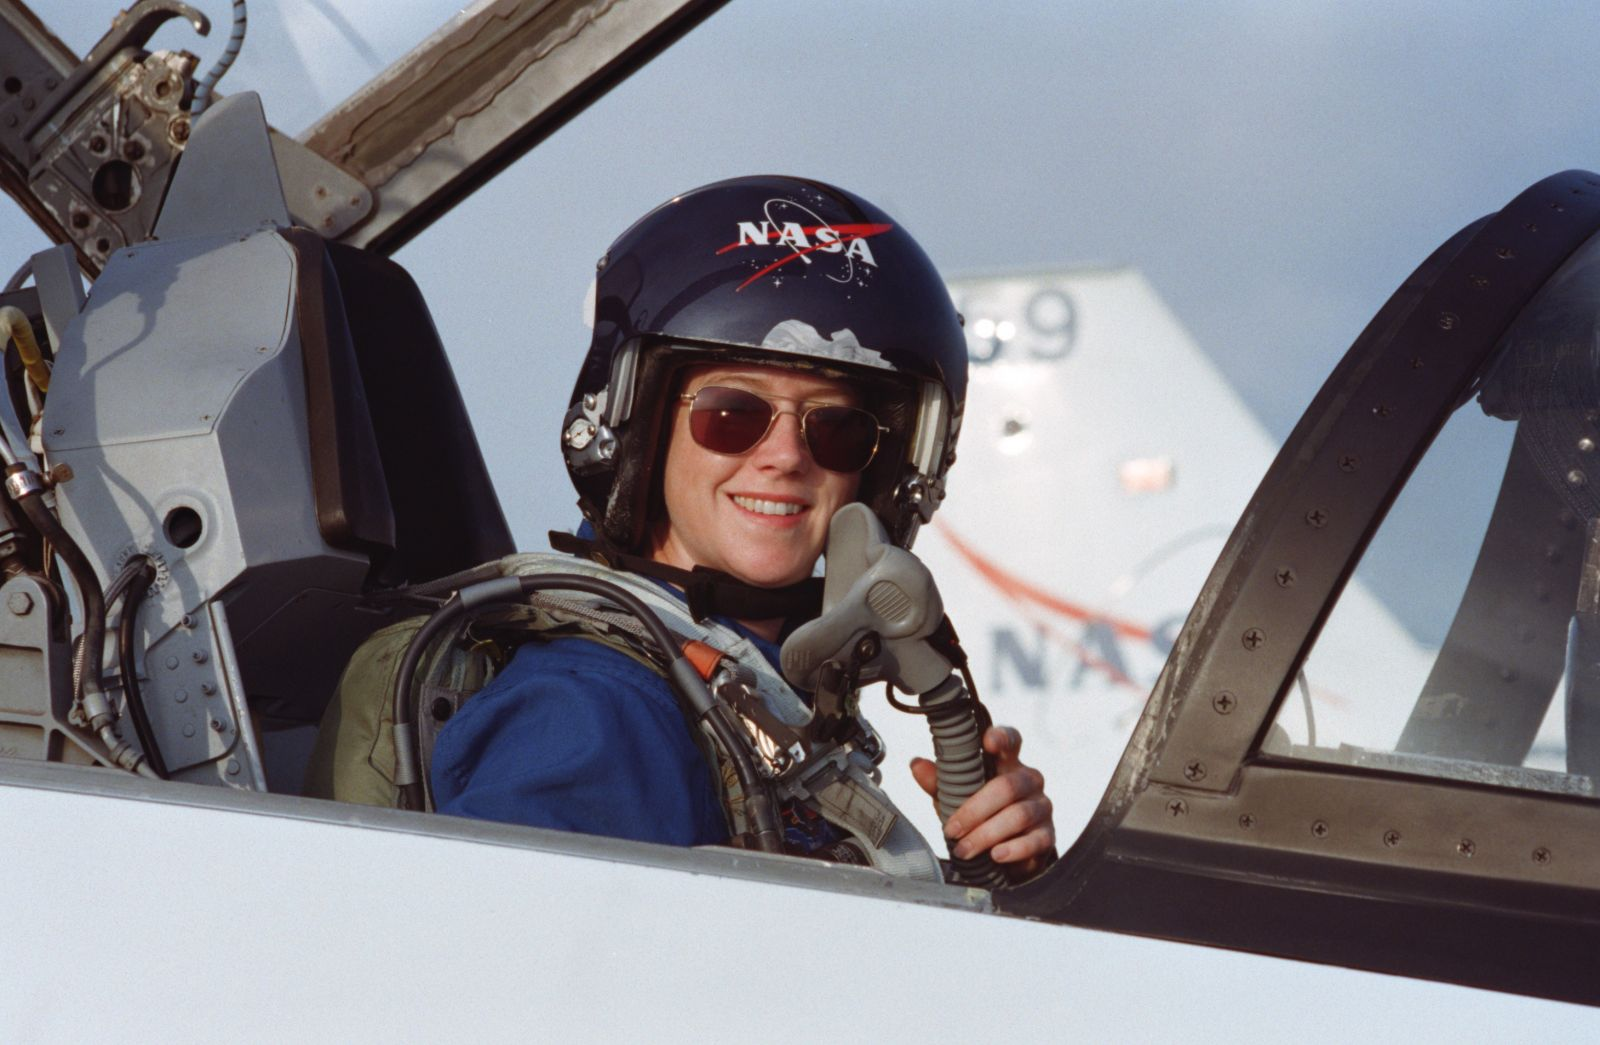 Pam Melroy sits in the forward station of a T-38 jet trainer in 2000 before joining other astronauts to train for her STS-92 mission to the International Space Station. Credit: NASA